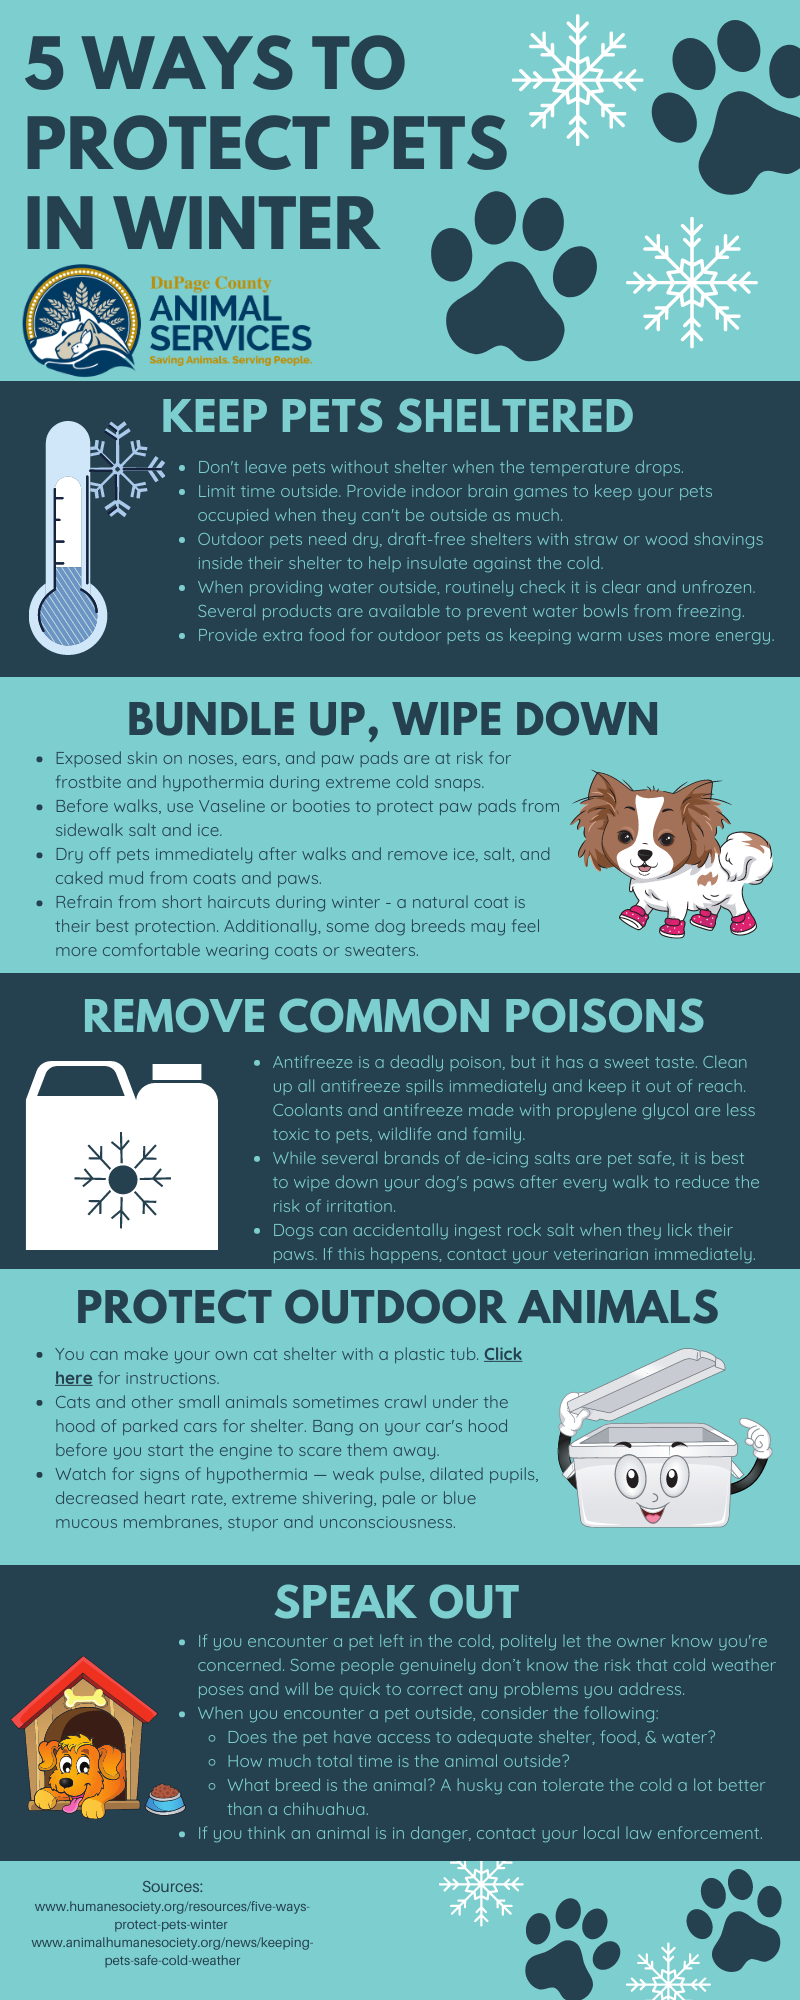 5 Ways to Protect Pets In Winter